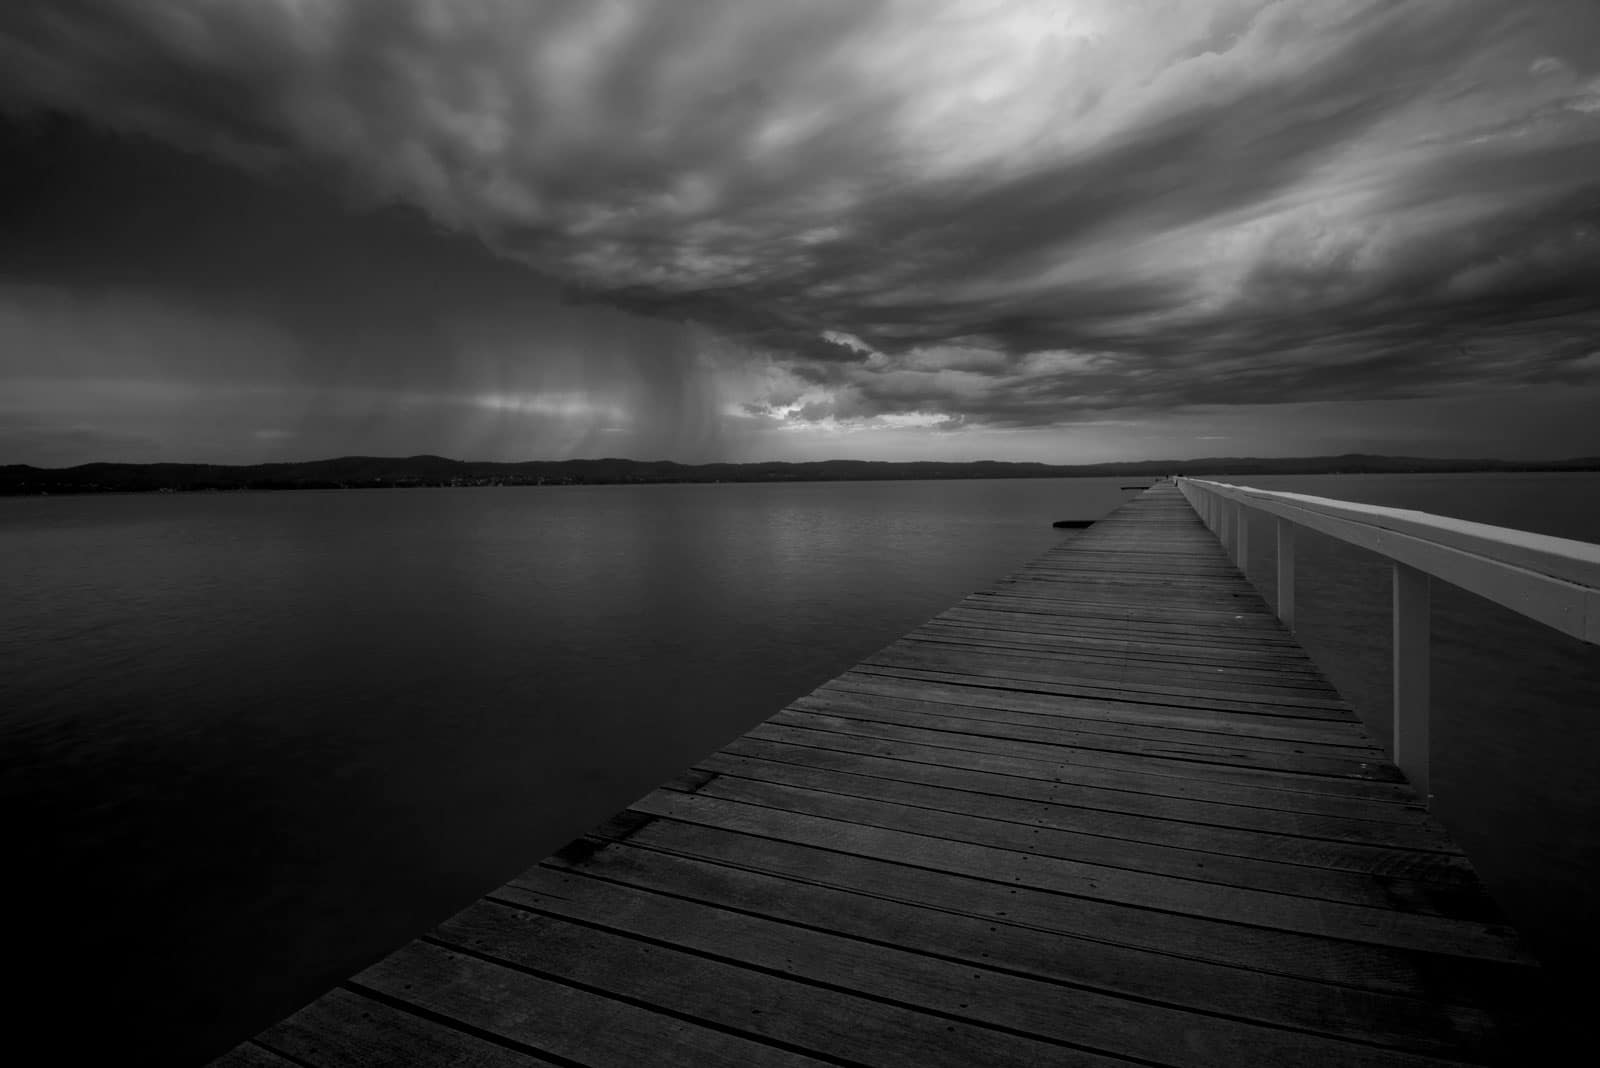 storm-over-long-jetty-tuggerah-lake-by-matt-dobson